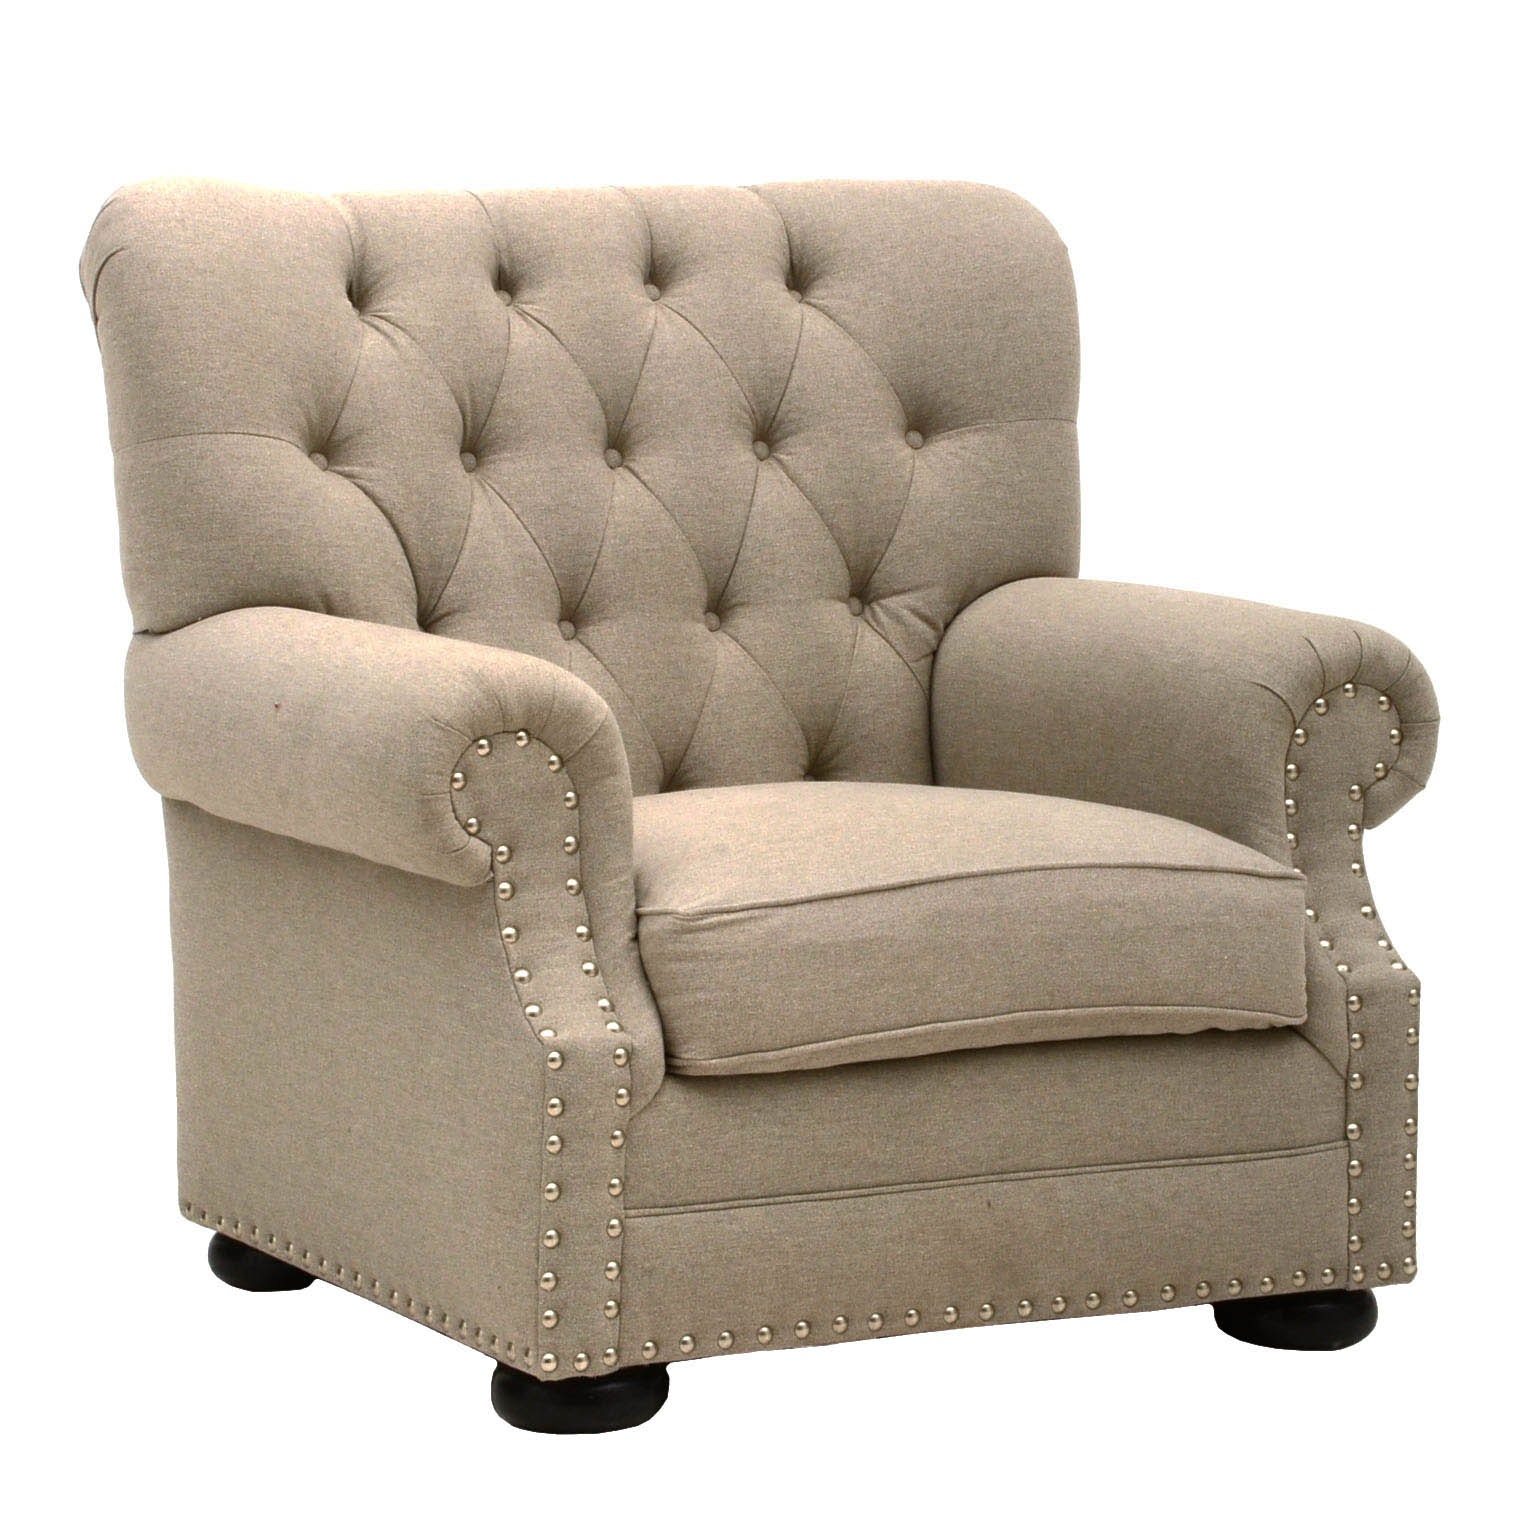 Southern Furniture Upholstered Armchair